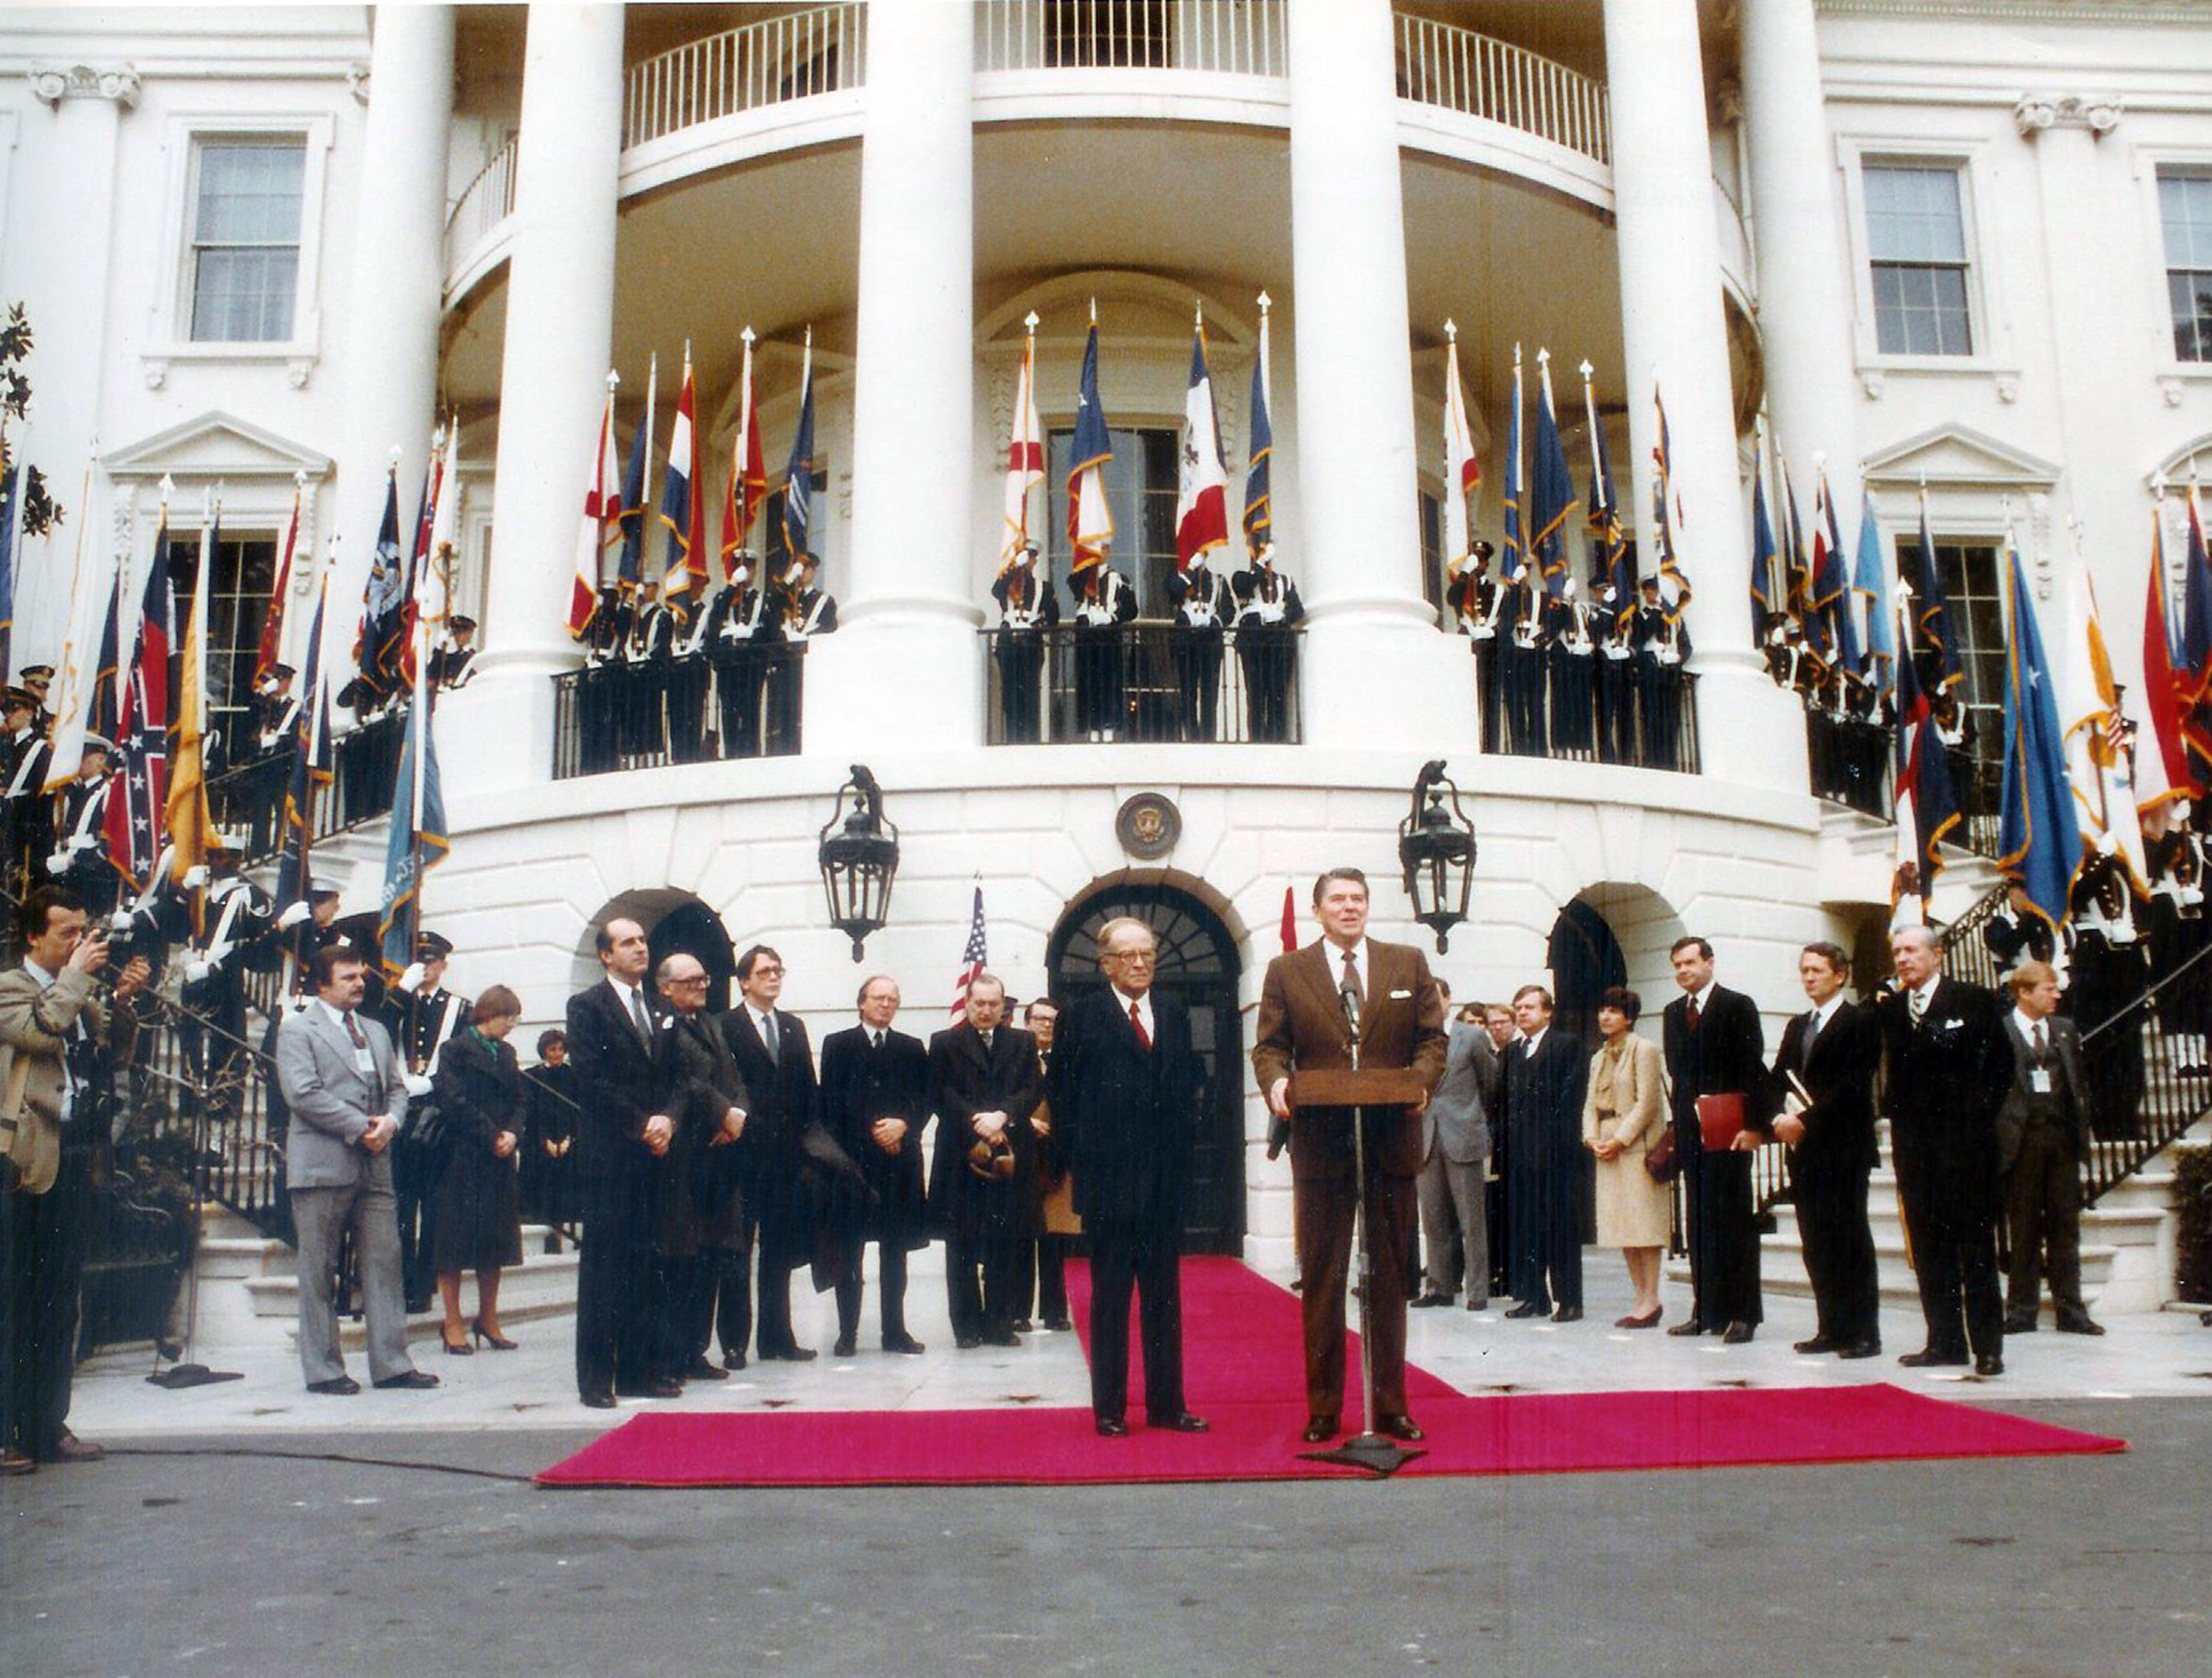 U.S. President Ronald Reagan and Chancellor of Austria Bruno Kreisky at The White House, Washington, D.C., February 3, 1983